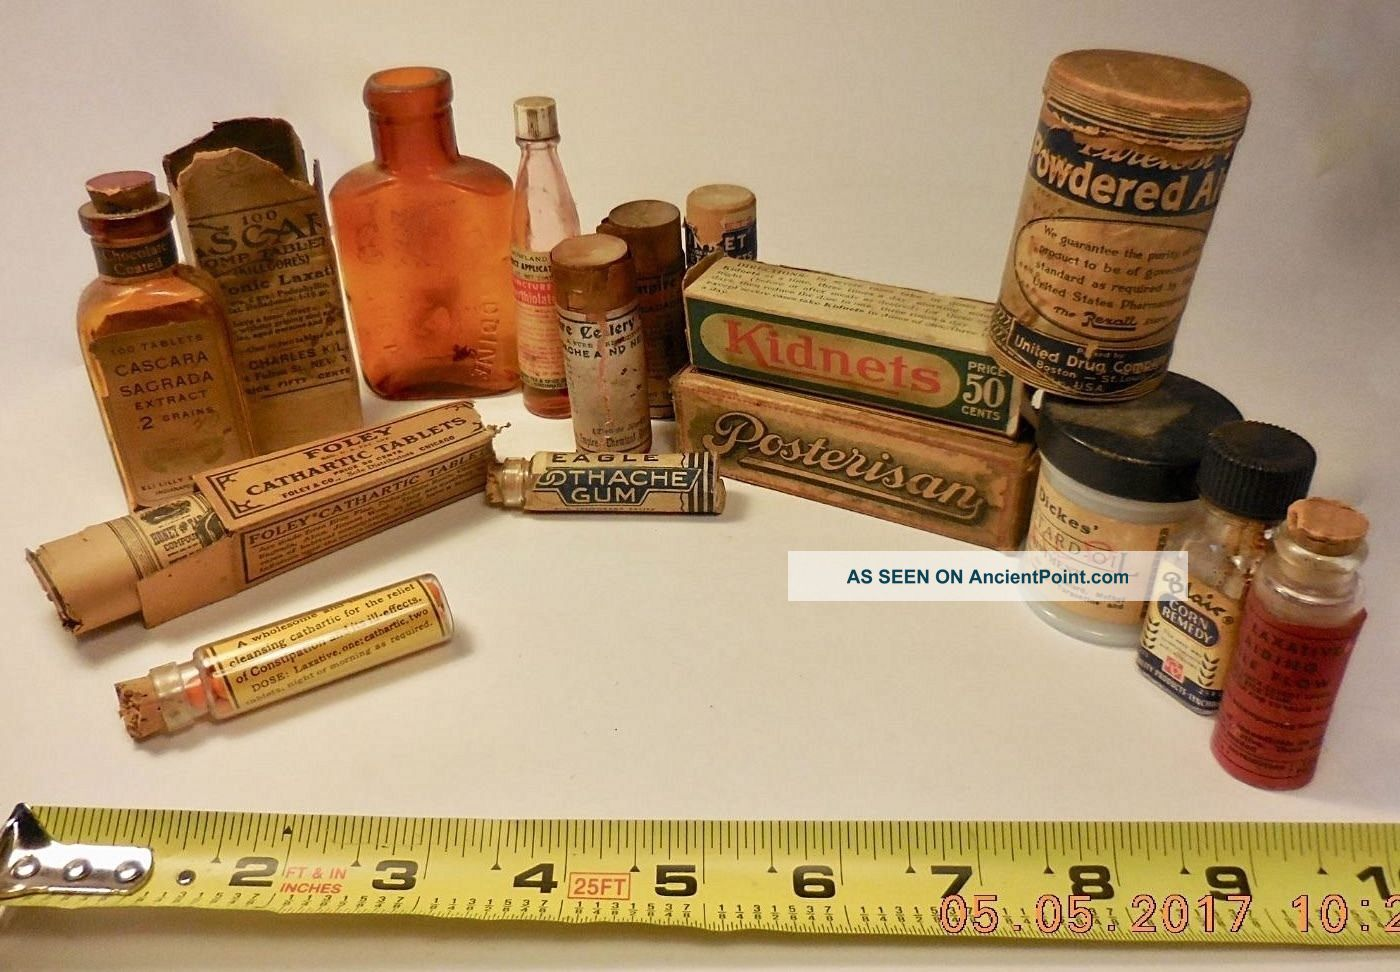 14 Vintage Adv.  Medical Bottles,  Boxes,  Wooden & Cardboard Containers - Laxatives, Quack Medicine photo